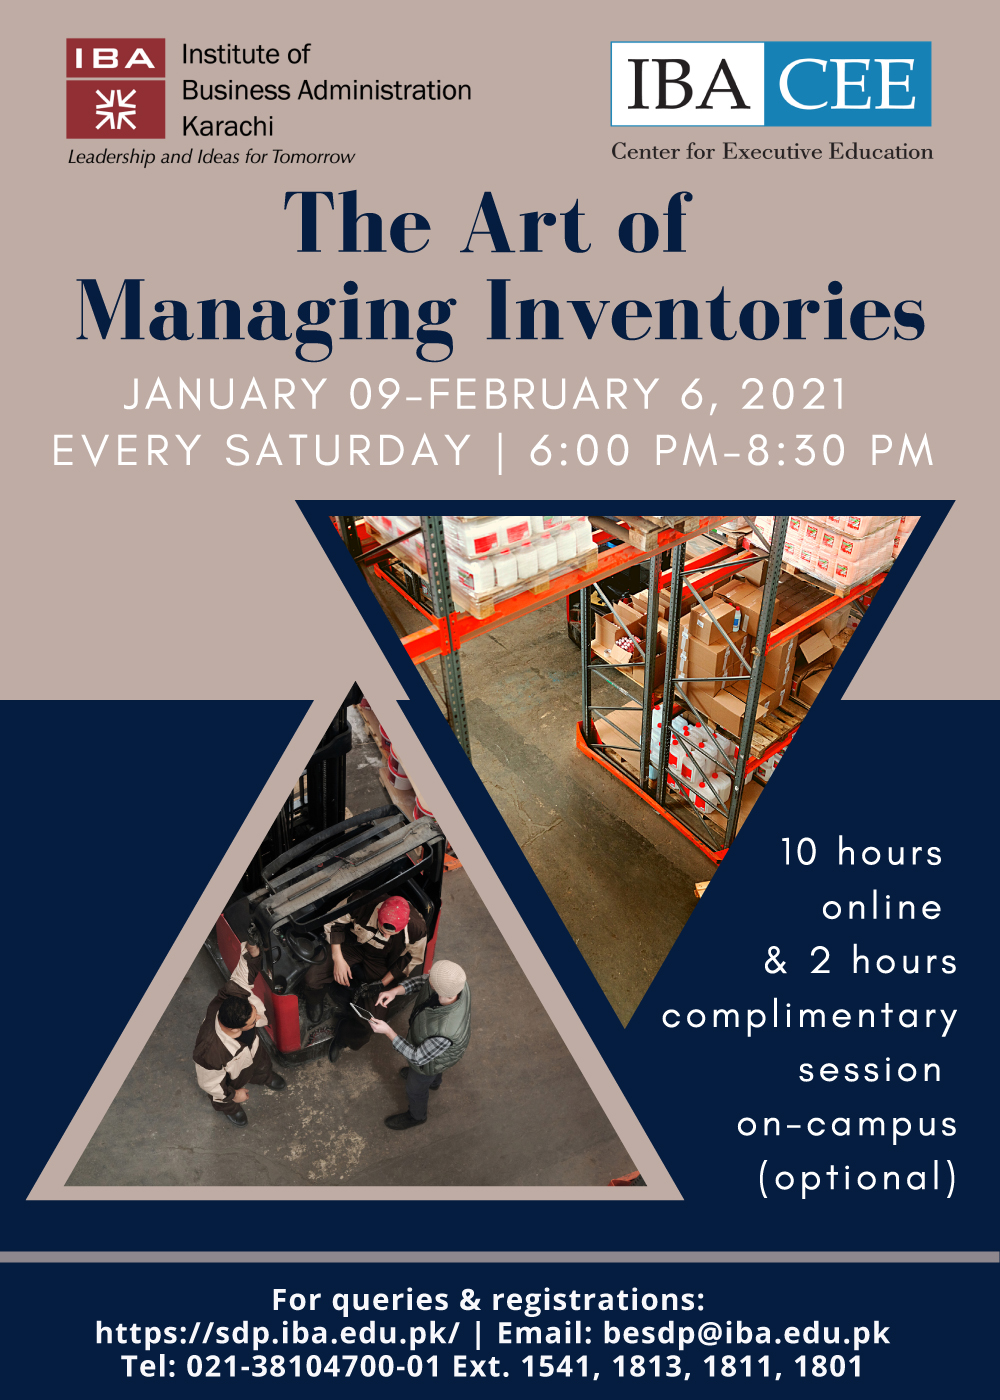 The Art of Managing Inventories